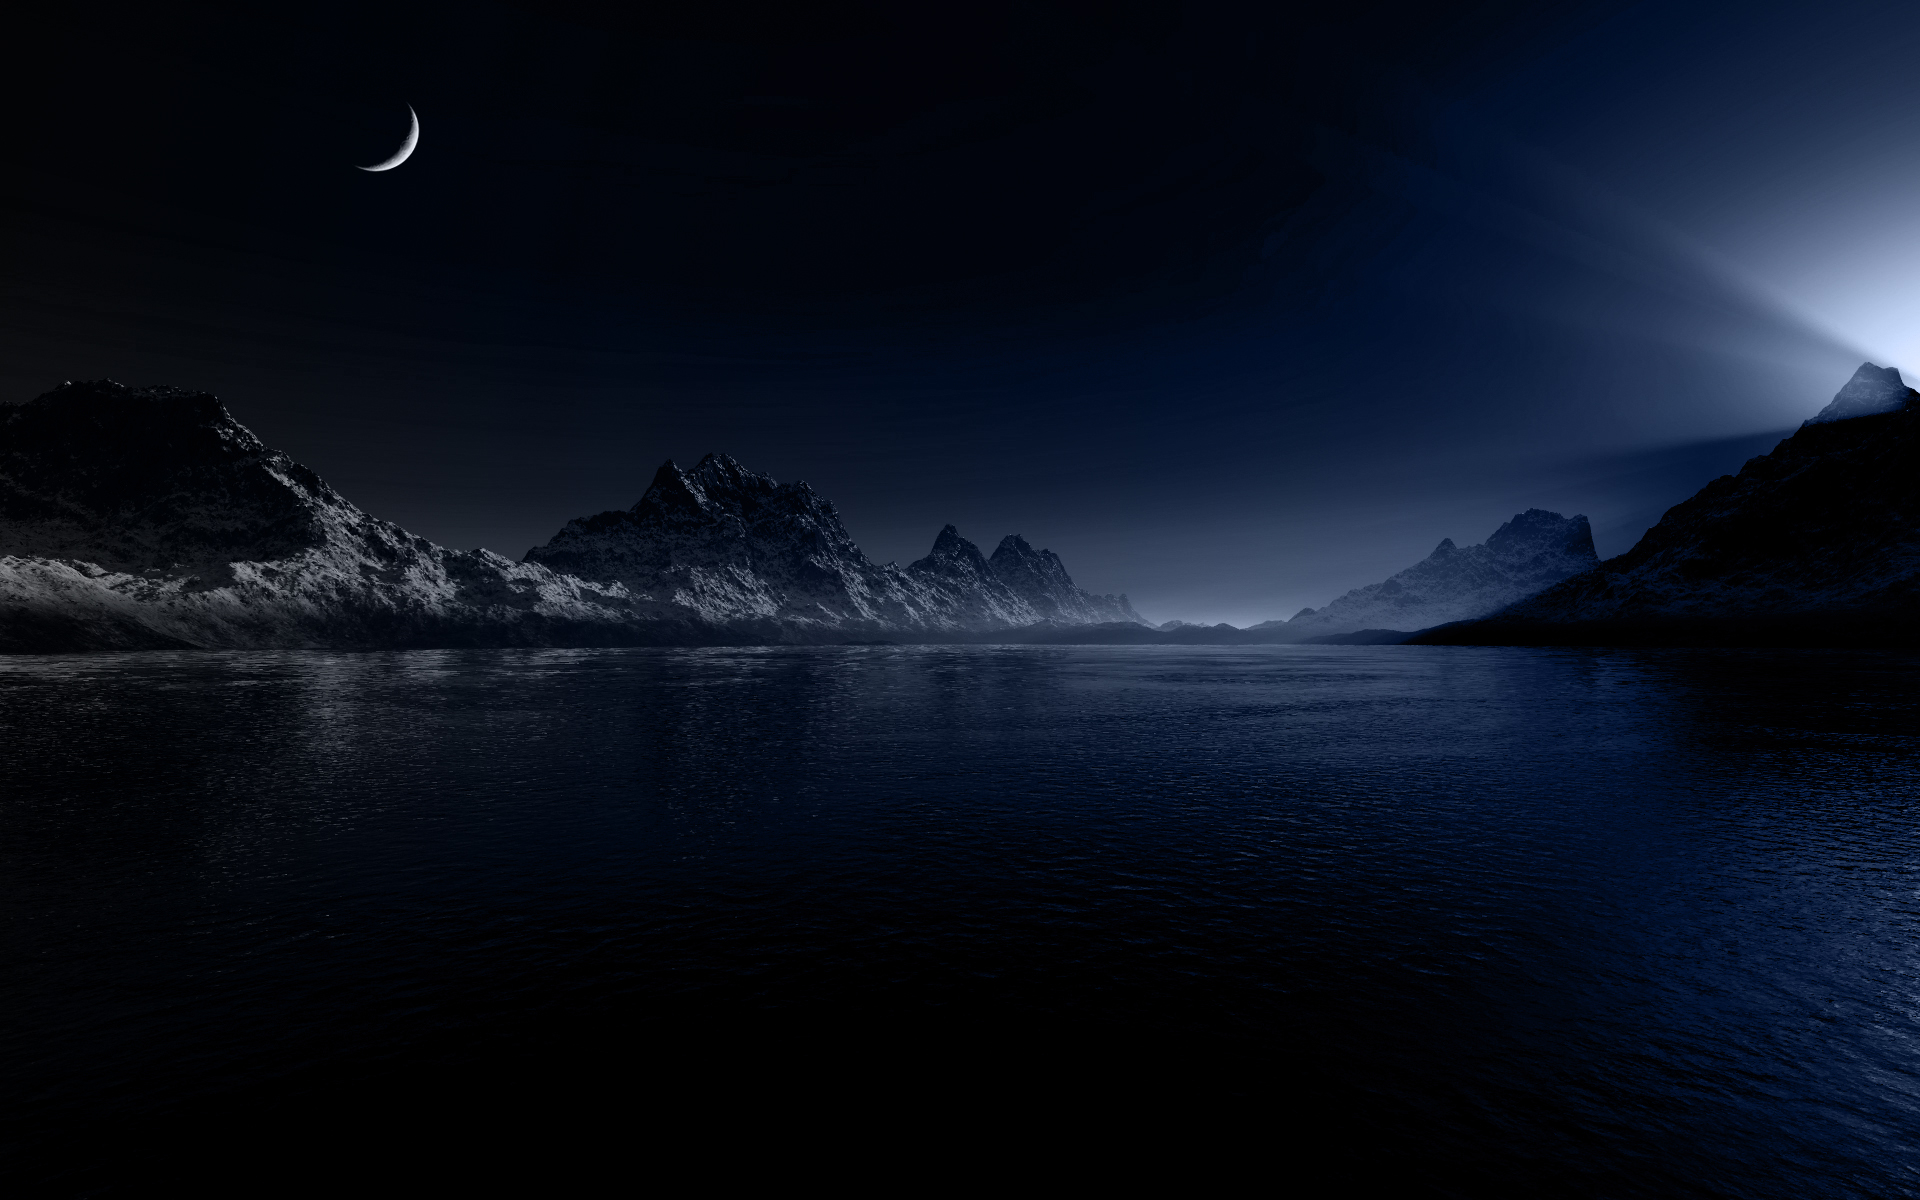 Night Landscape Wallpaper